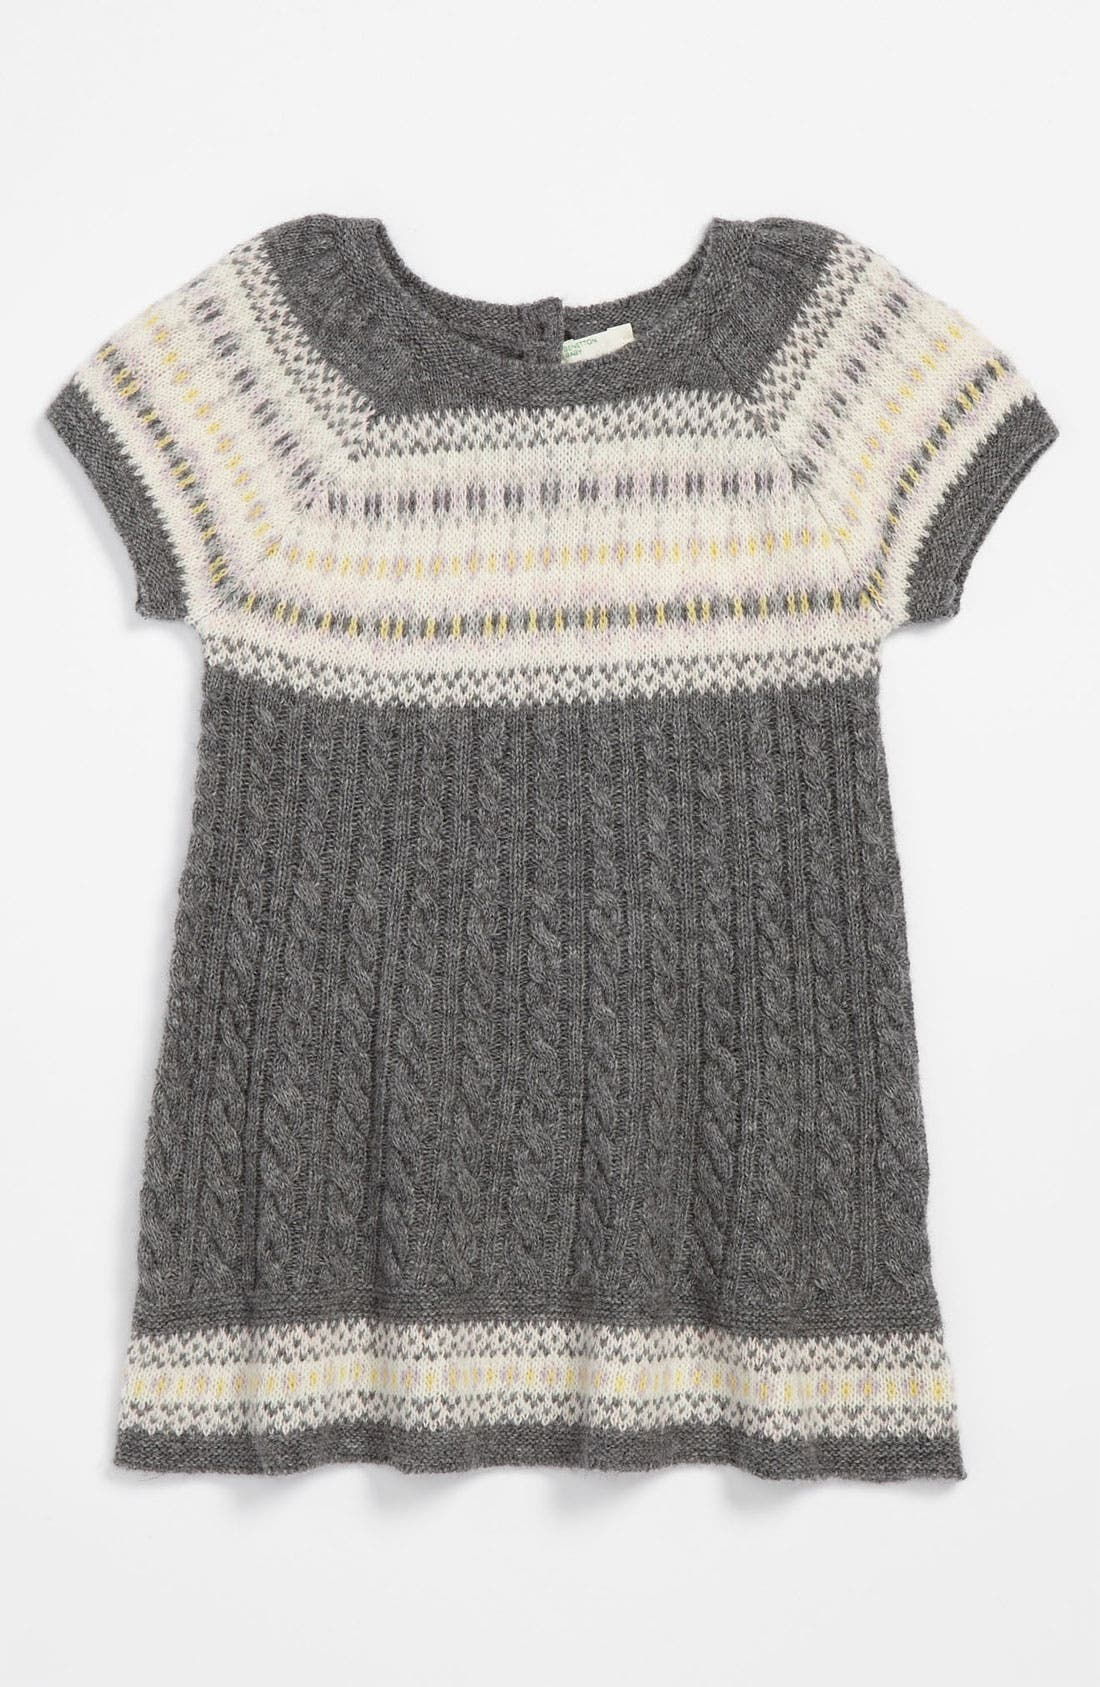 Main Image - United Colors of Benetton Kids Knit Dress (Infant)